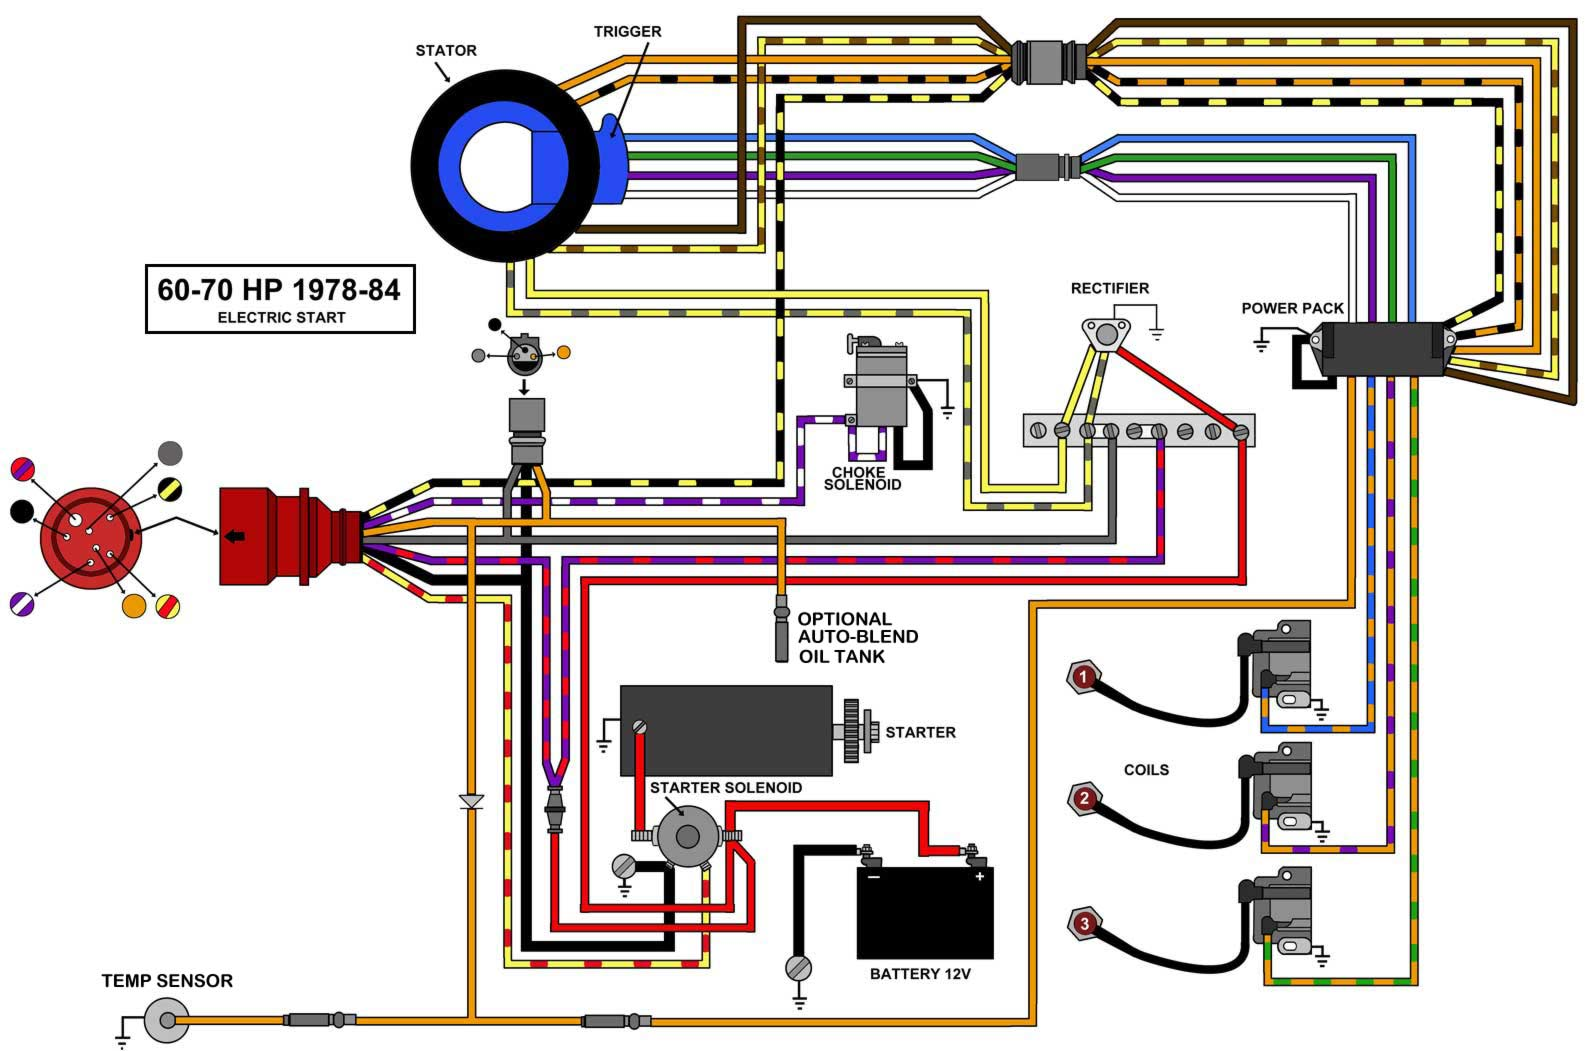 hight resolution of yamaha 60 hp wiring diagram schema wiring diagram online rh 19 1 travelmate nz de yamaha motorcycle schematics yamaha 60 hp 4 stroke wiring diagram